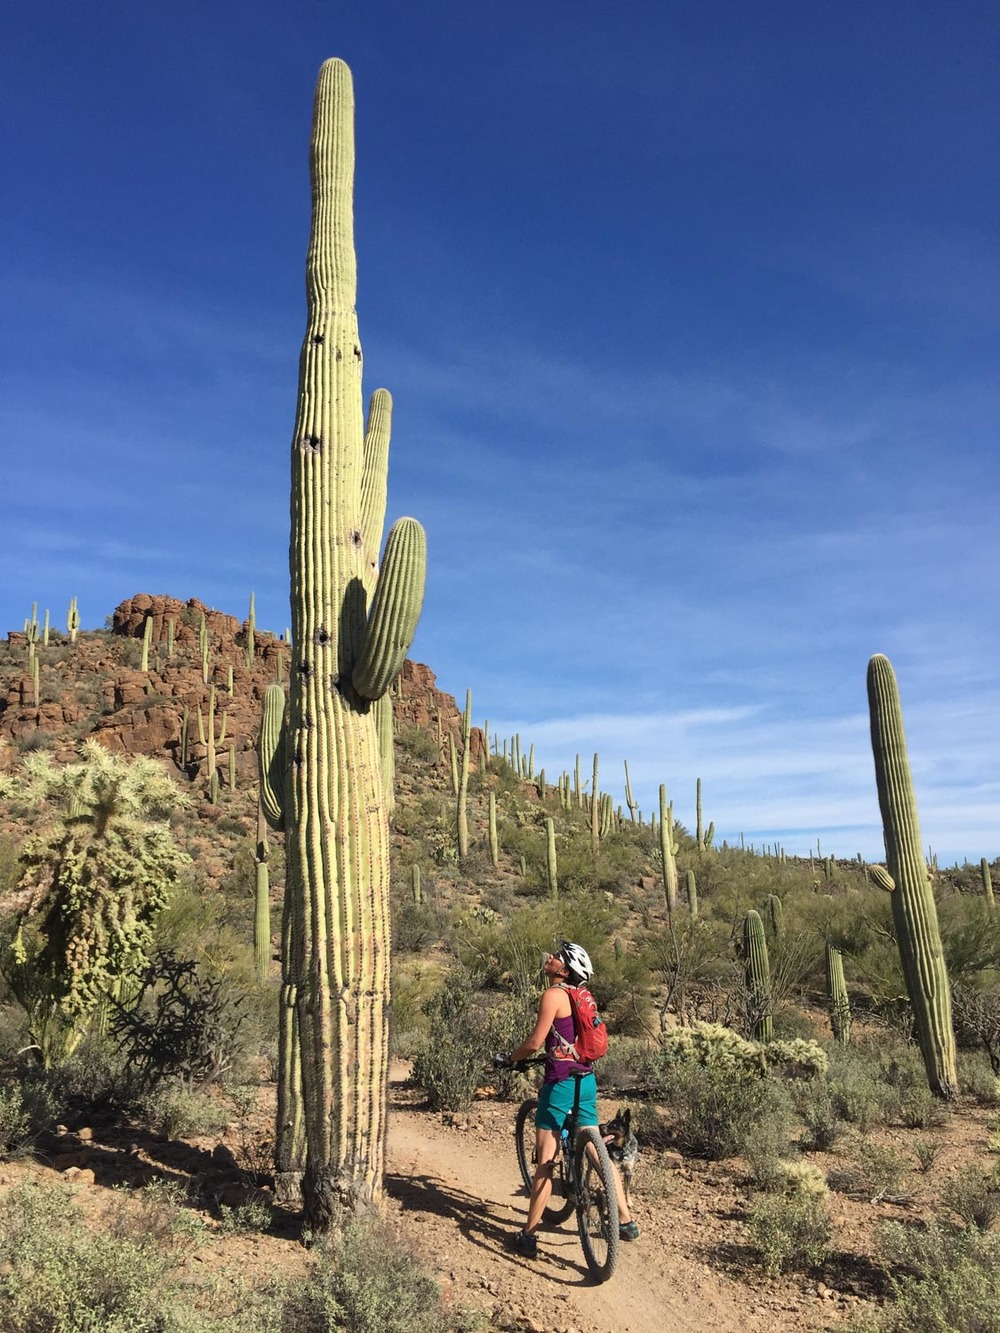 Mountain biking at Tucson Mountain Park.